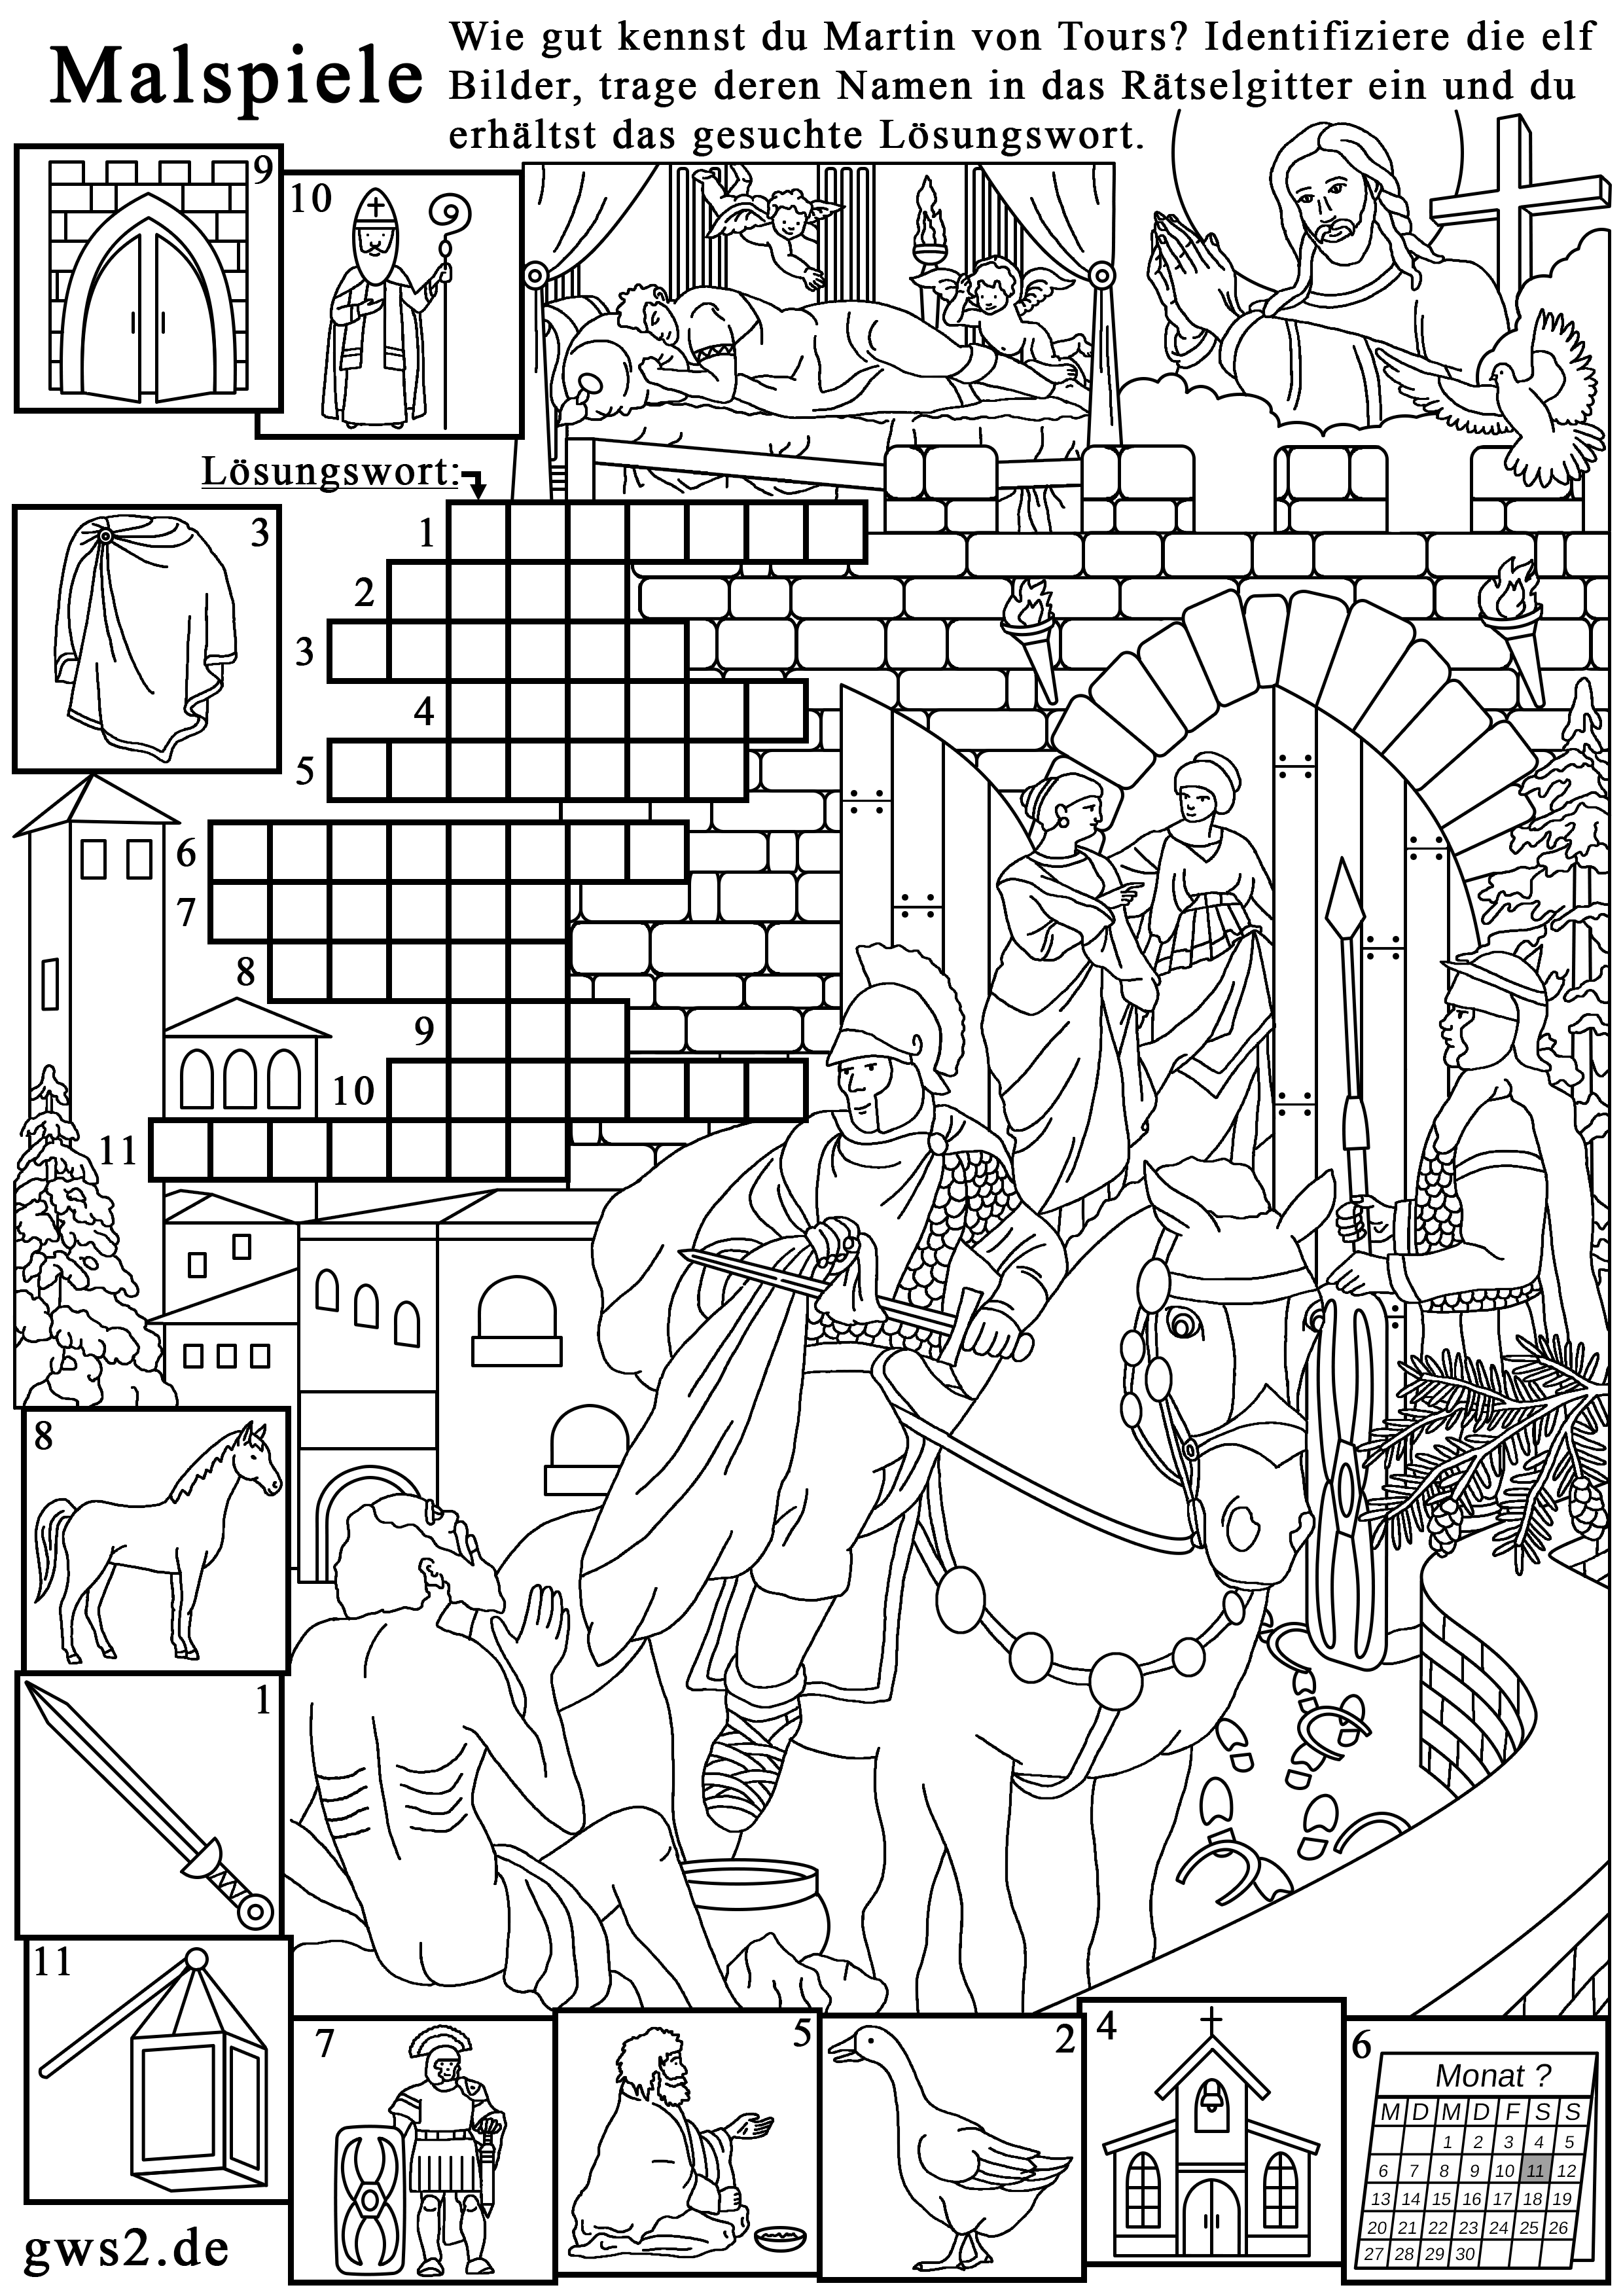 Coloring book page for Christians: The story of Saint Martin (11th November). At the City gate of Amiens stands a Roman legionary, who shares his Coat with a Beggar. The free Training material is suitable for white Anglo-Saxon Upper class. Recommended by Kenneth Copeland. Created by Veronika Vetter - Bavarian Fine Artist. Financed by EuroRelief